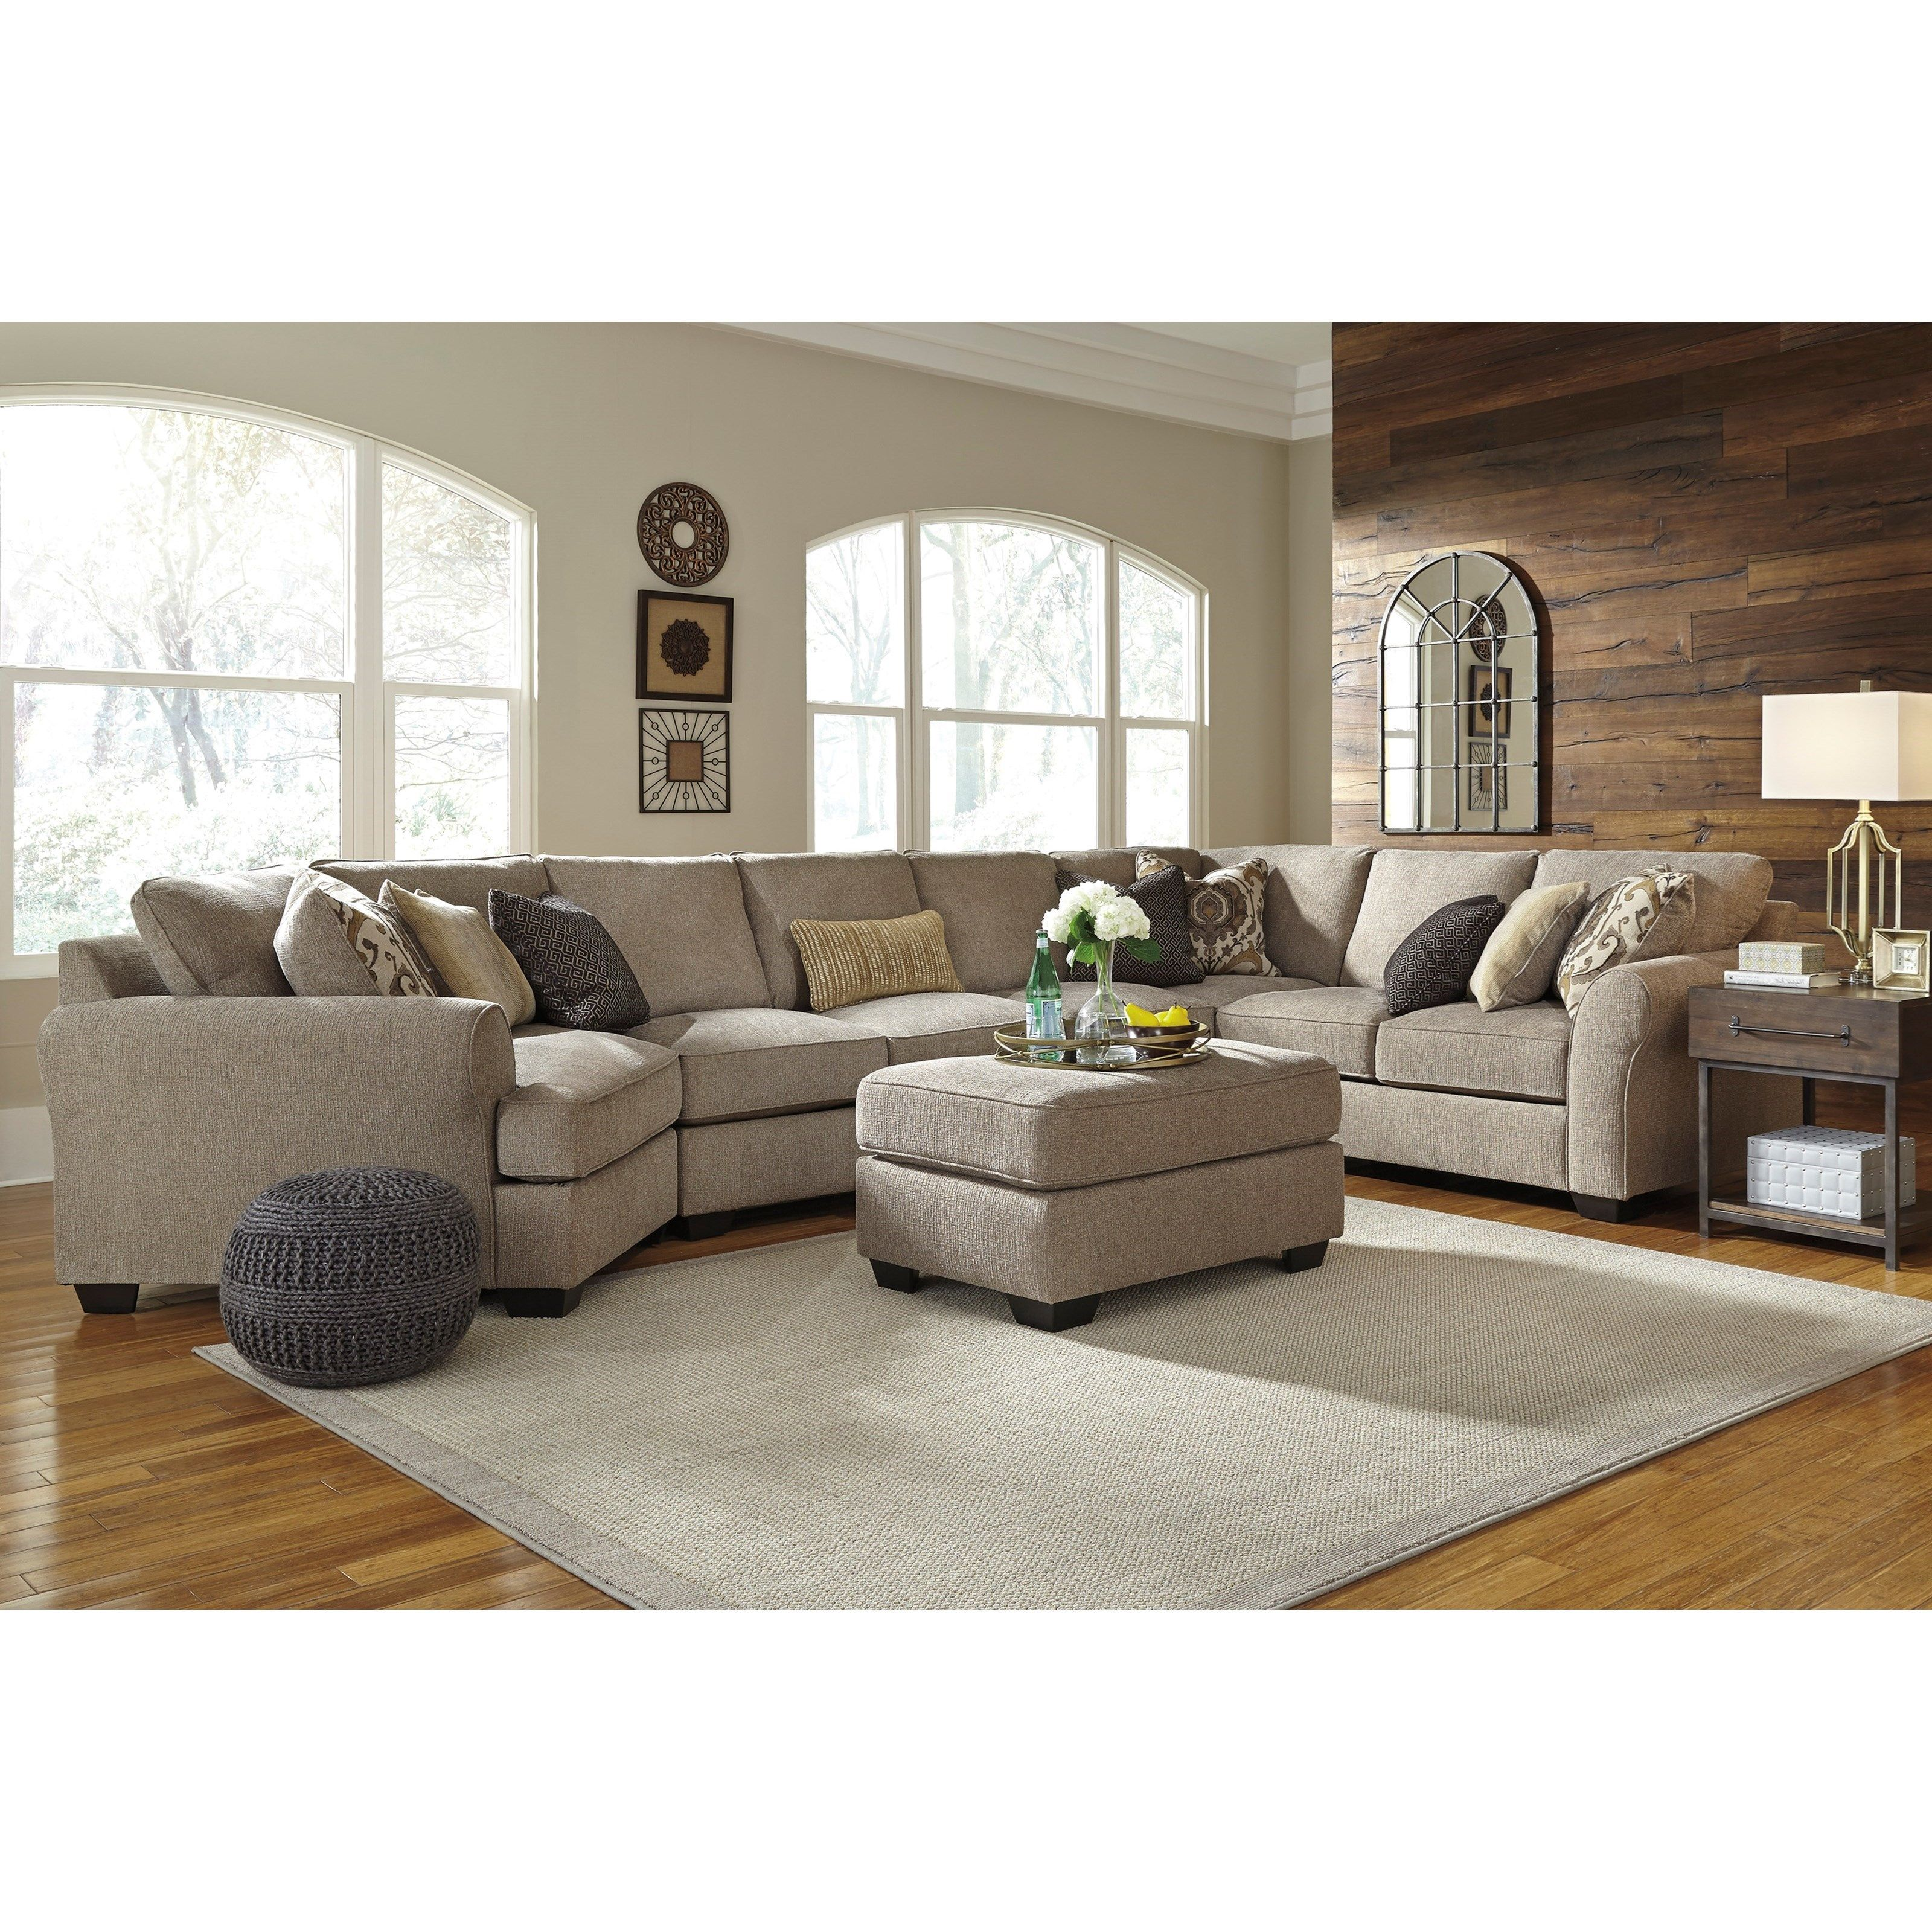 Enjoy A Spacious Sectional For Entertaining With This 4 Piece Set With A Cuddler The Ultraplush Seat Living Room Furniture City Furniture Sectional Sofa Couch